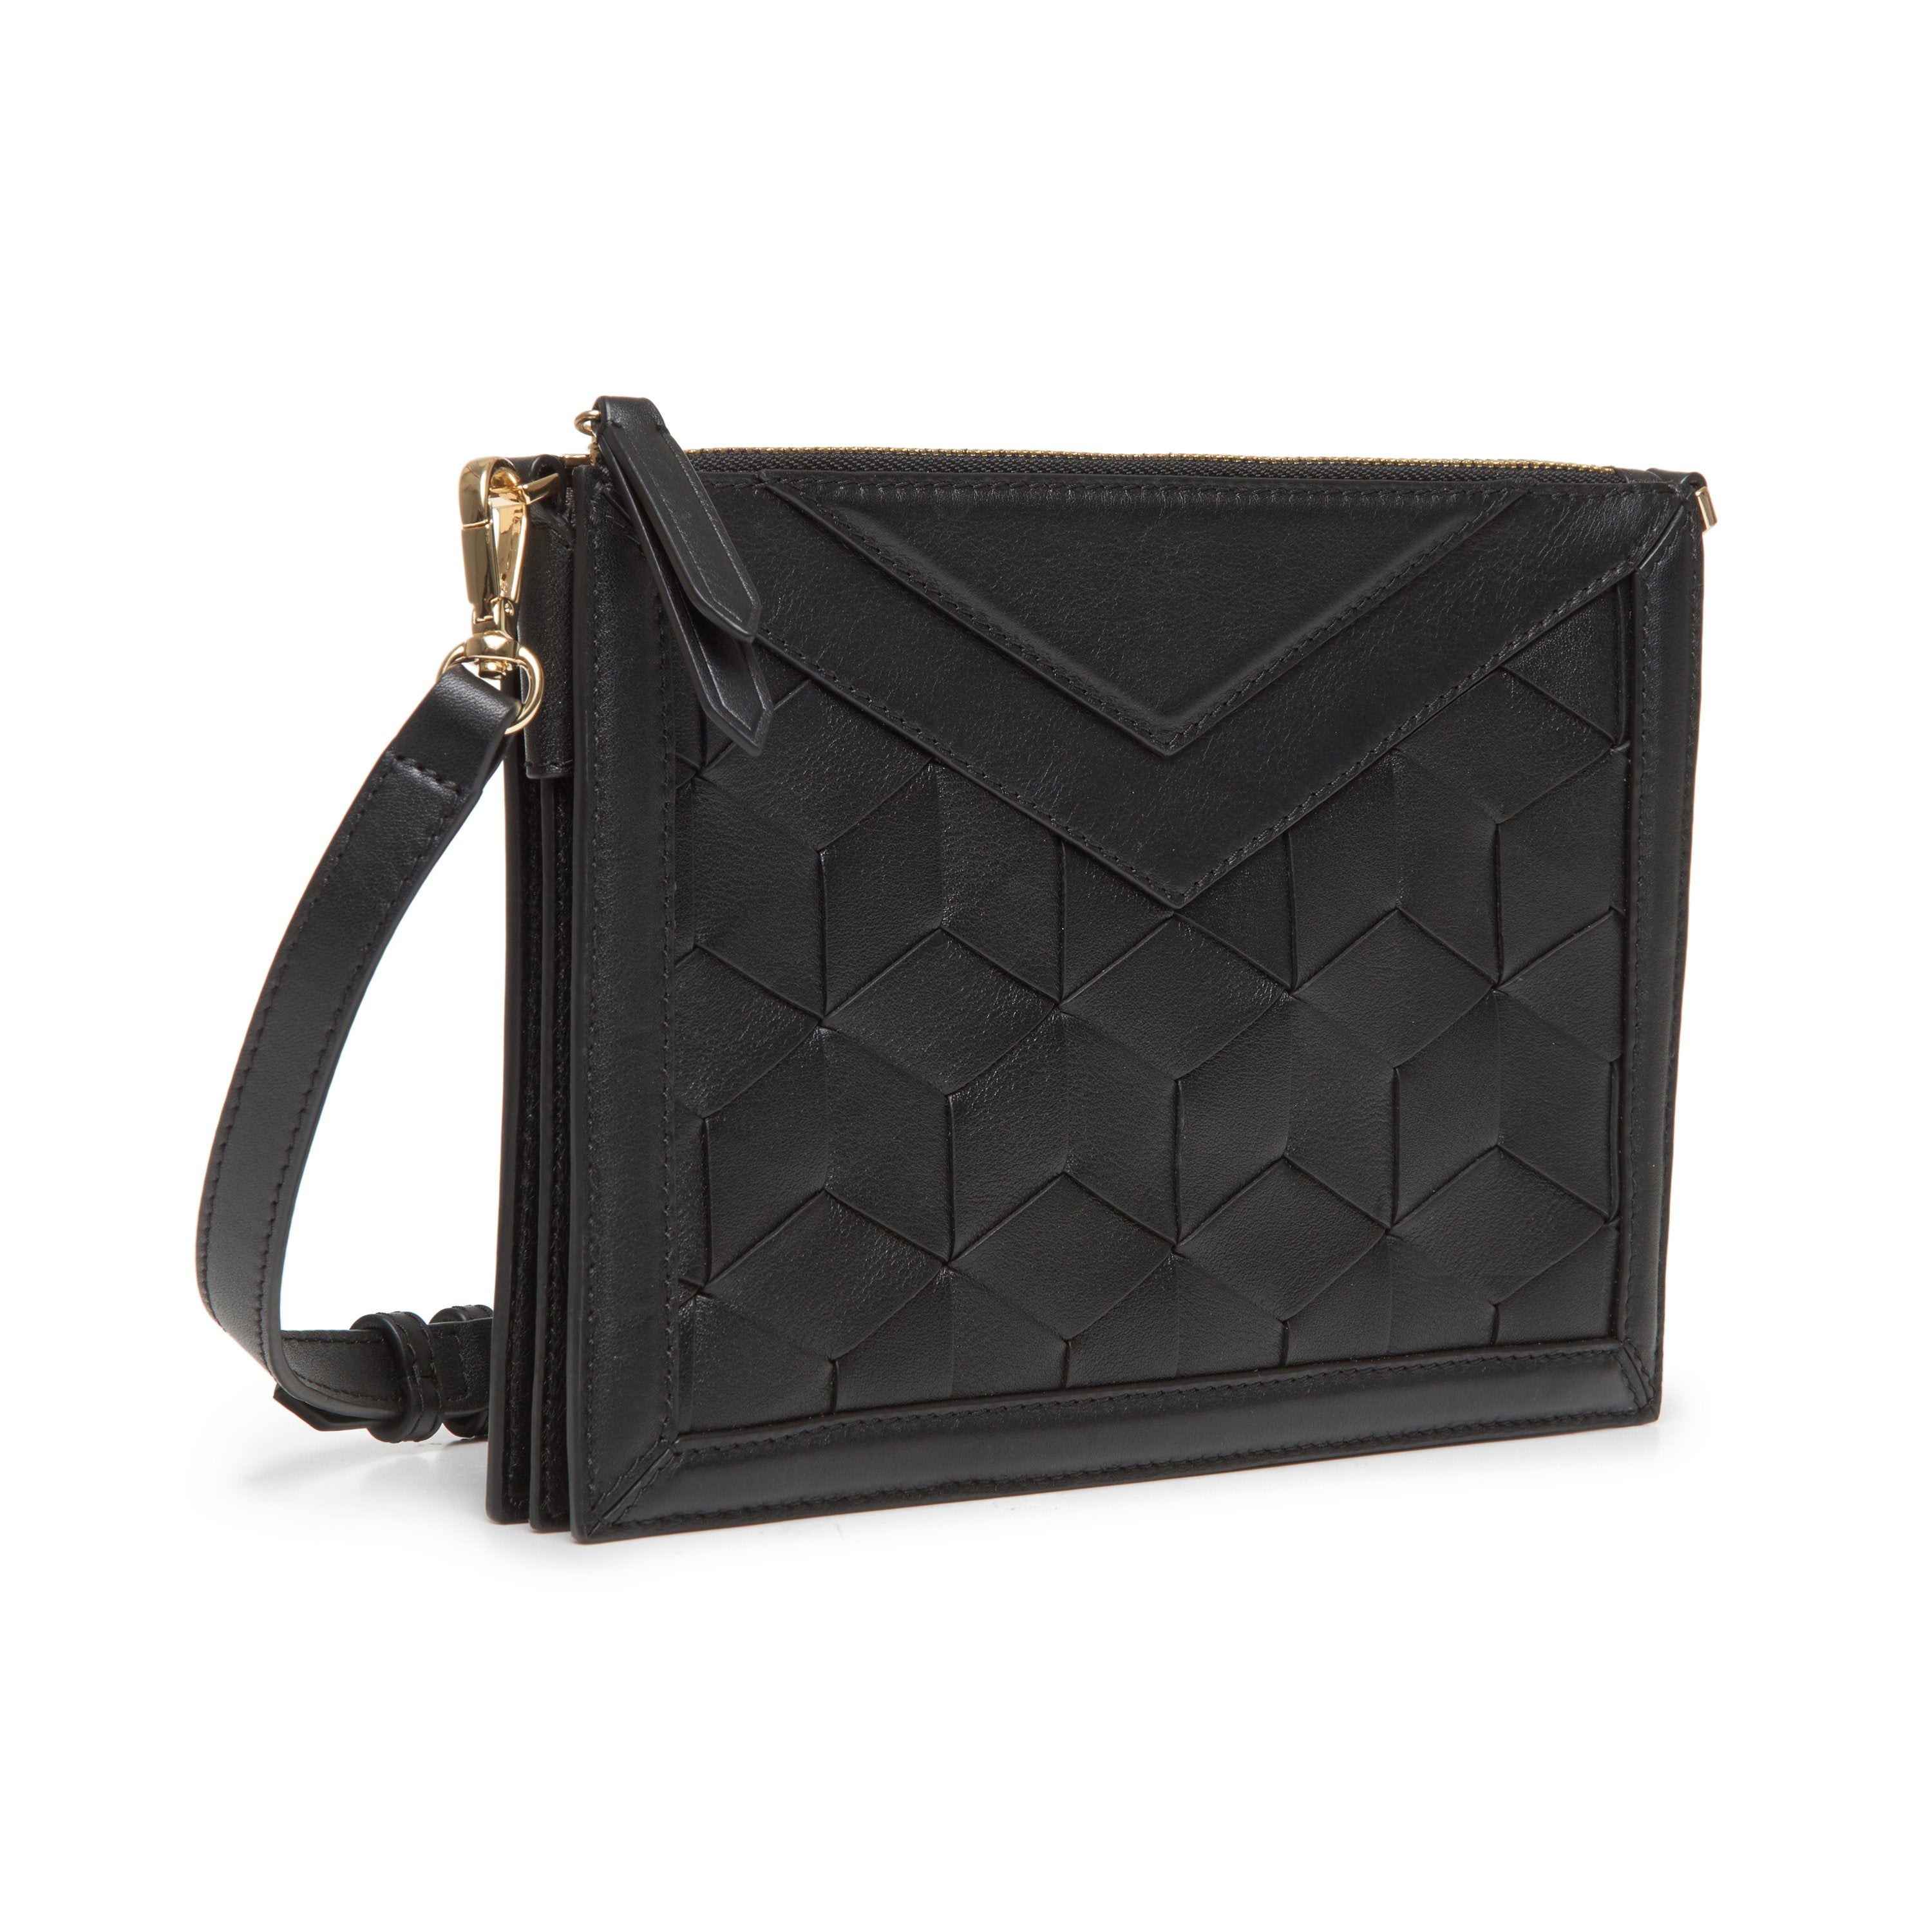 Wander Woven Leather Crossbody Bag